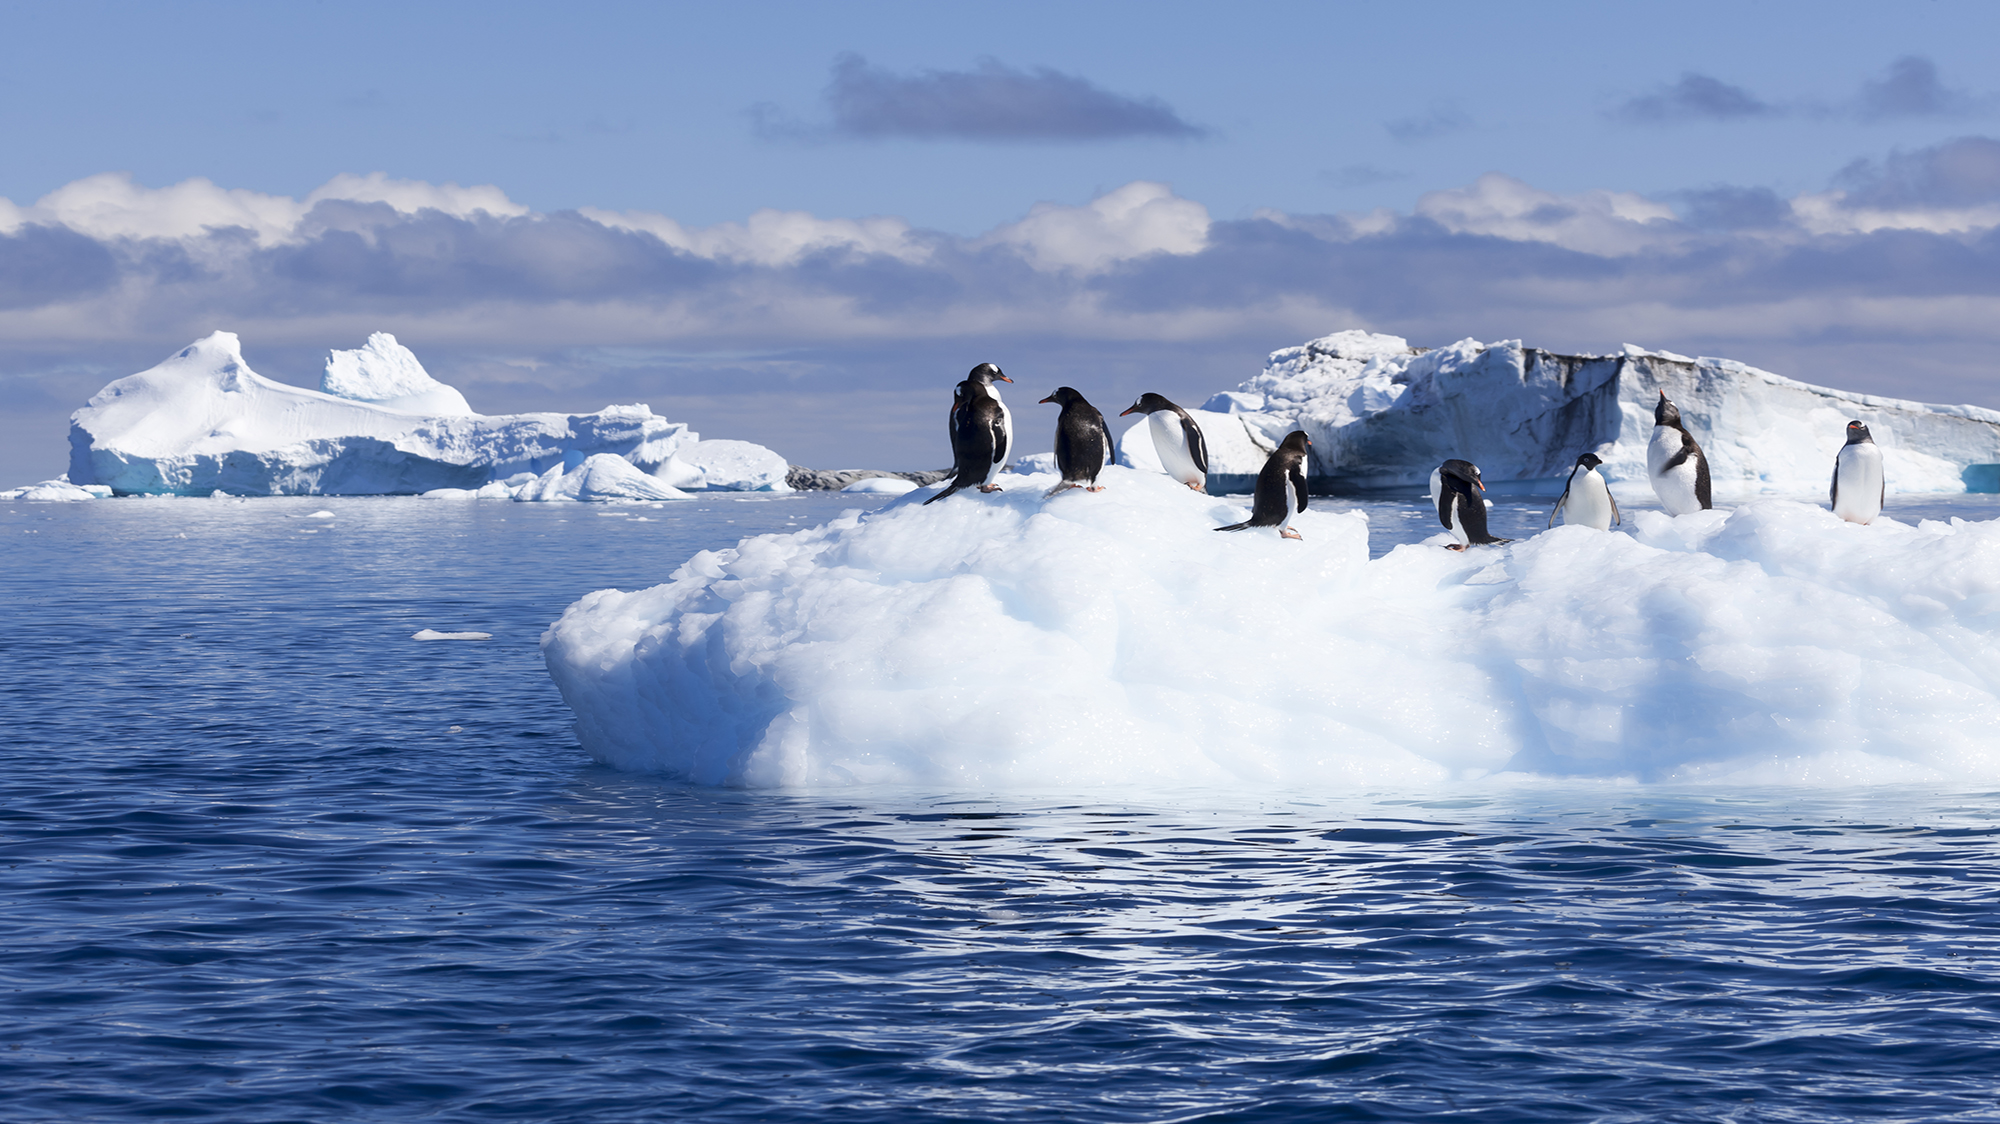 global warming in antartica That really is hilarious – global warming scientists looking for evidence to support their theory in antartica, getting stuck in the ice and then the rescuers getting stuck as well.